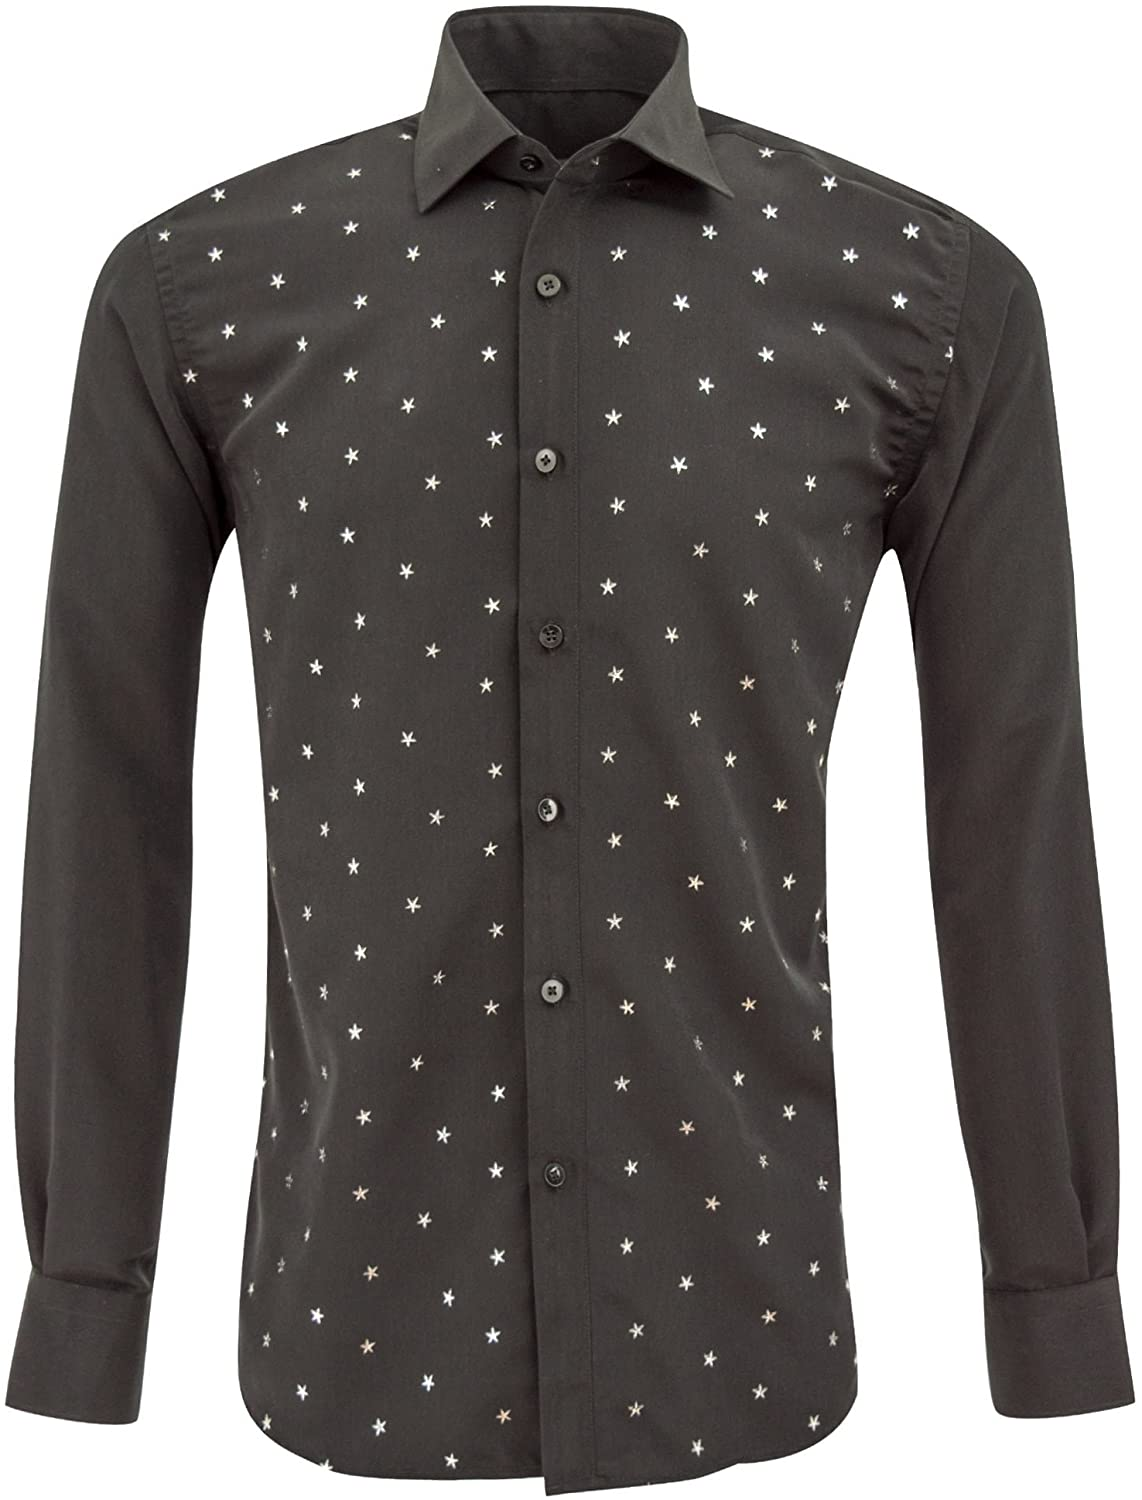 Oscar Banks Metallic Stars Print Full Sleeve Men's Shirt SL6445